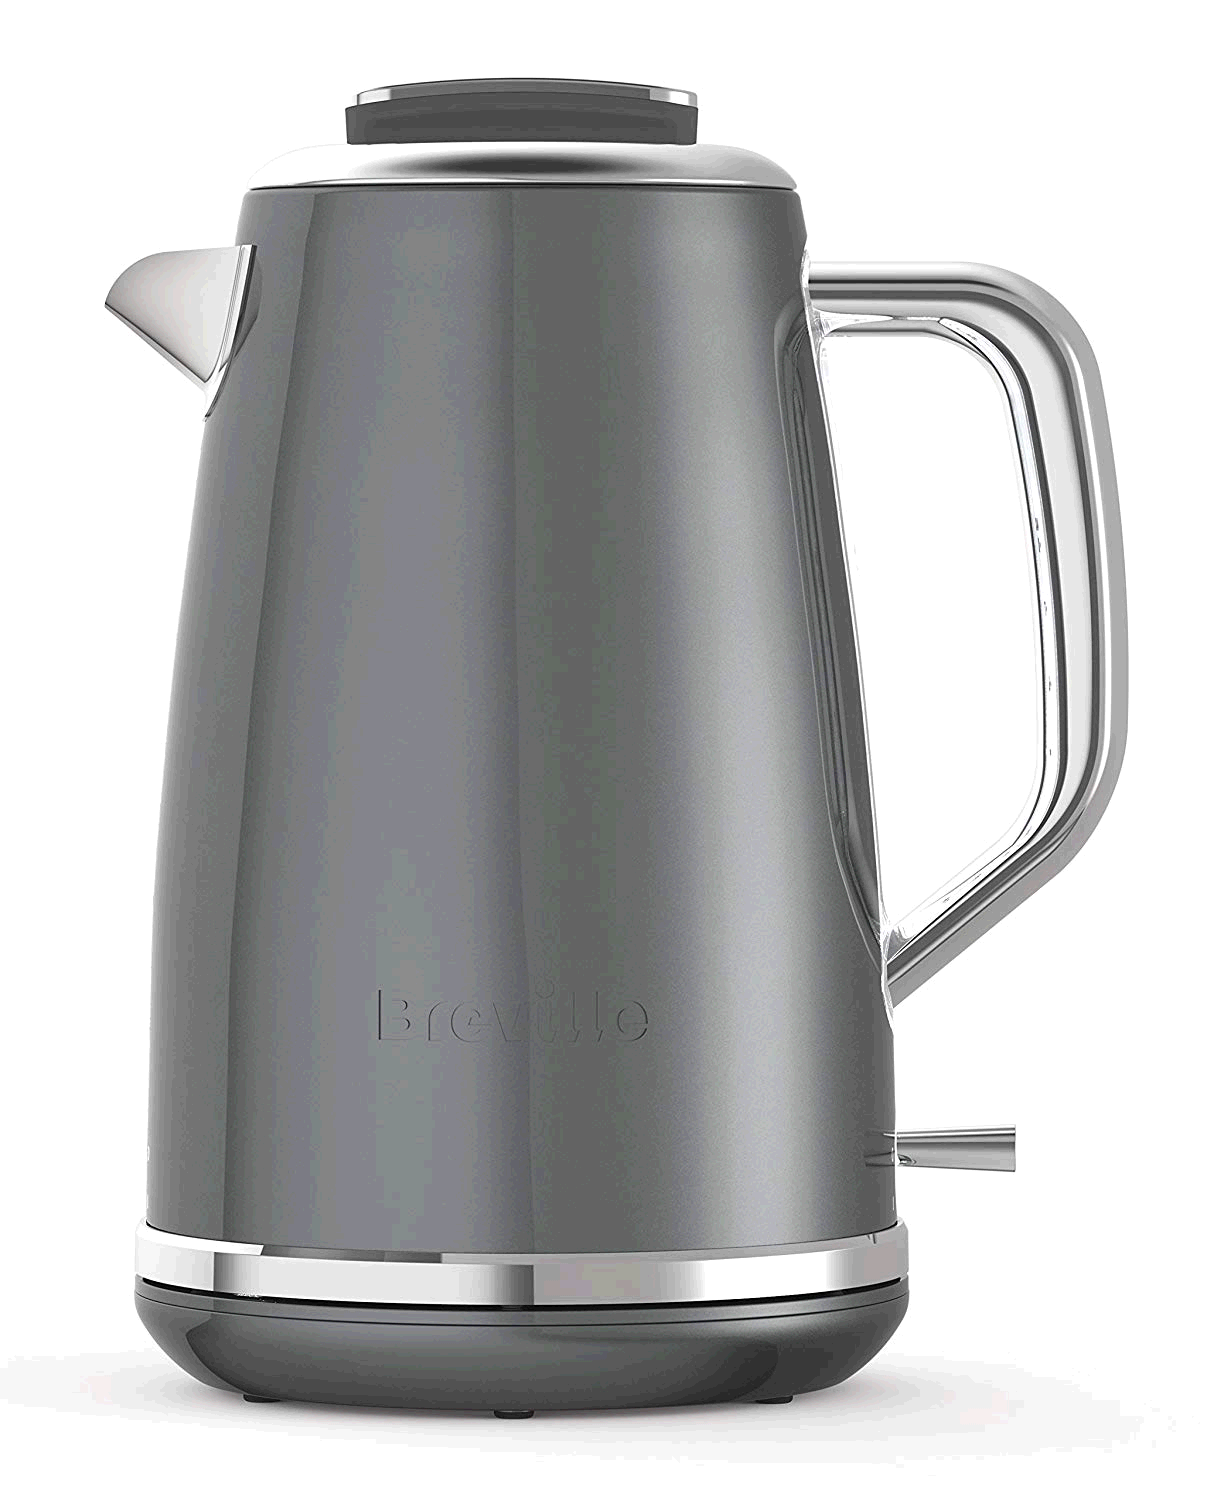 Breville Lustra Electric Jug Kettle Stainless Steel Storm Grey 1.7ltr 3Kw